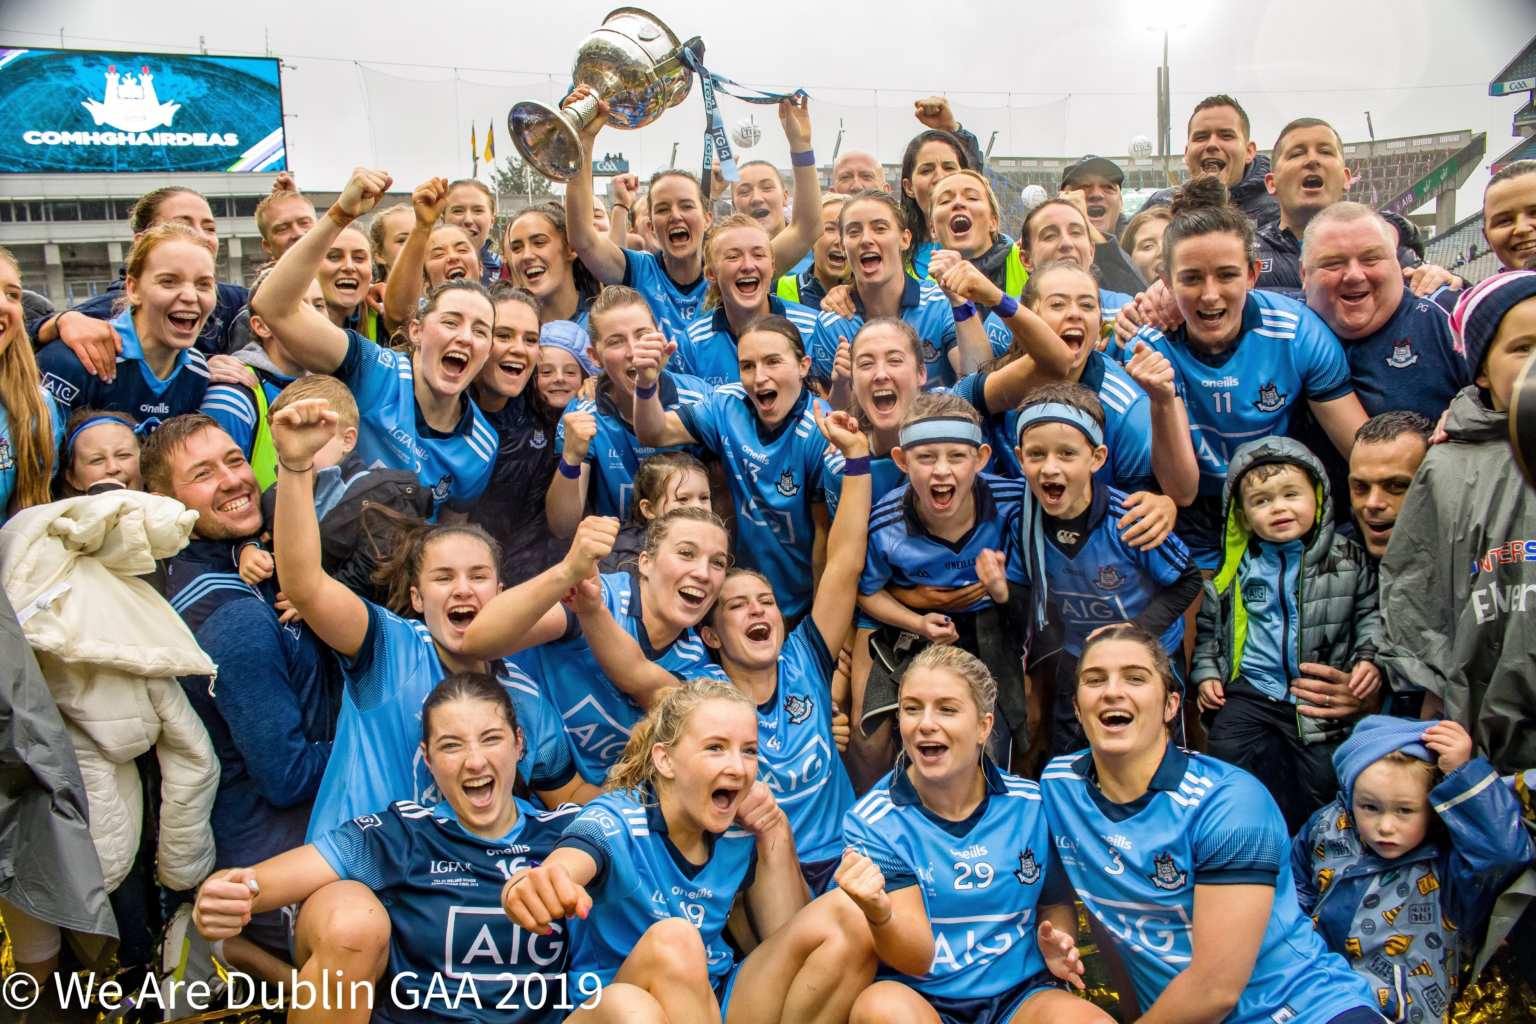 Dublin ladies football squad celebrating on the Croke Park pitch after winning the 2019 All Ireland Final, Dublin have been drawn in Group 2 of the revamped 2020 Senior All Ireland Championship alongside the Munster championship winners